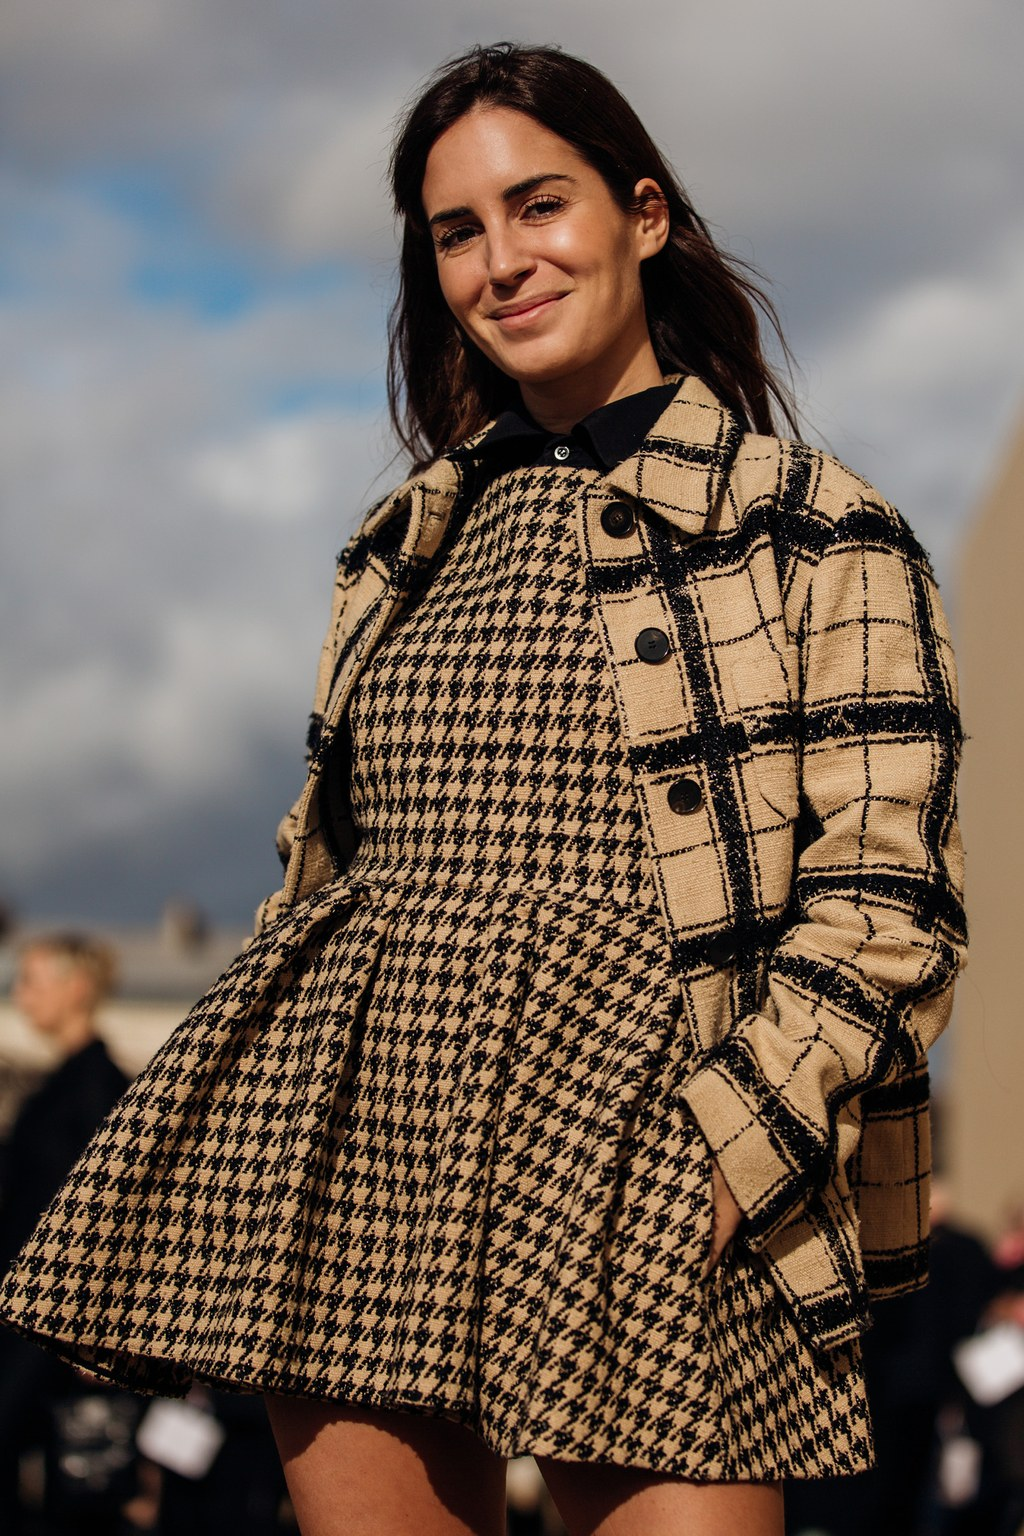 Street Style Tips From Paris Fashion Week 2020 paris fashion week 2020 Street Style Tips From Paris Fashion Week 2020 00005PARIS DAY1 Vogueint 25feb20 credit Jonathan Daniel Pryce 275